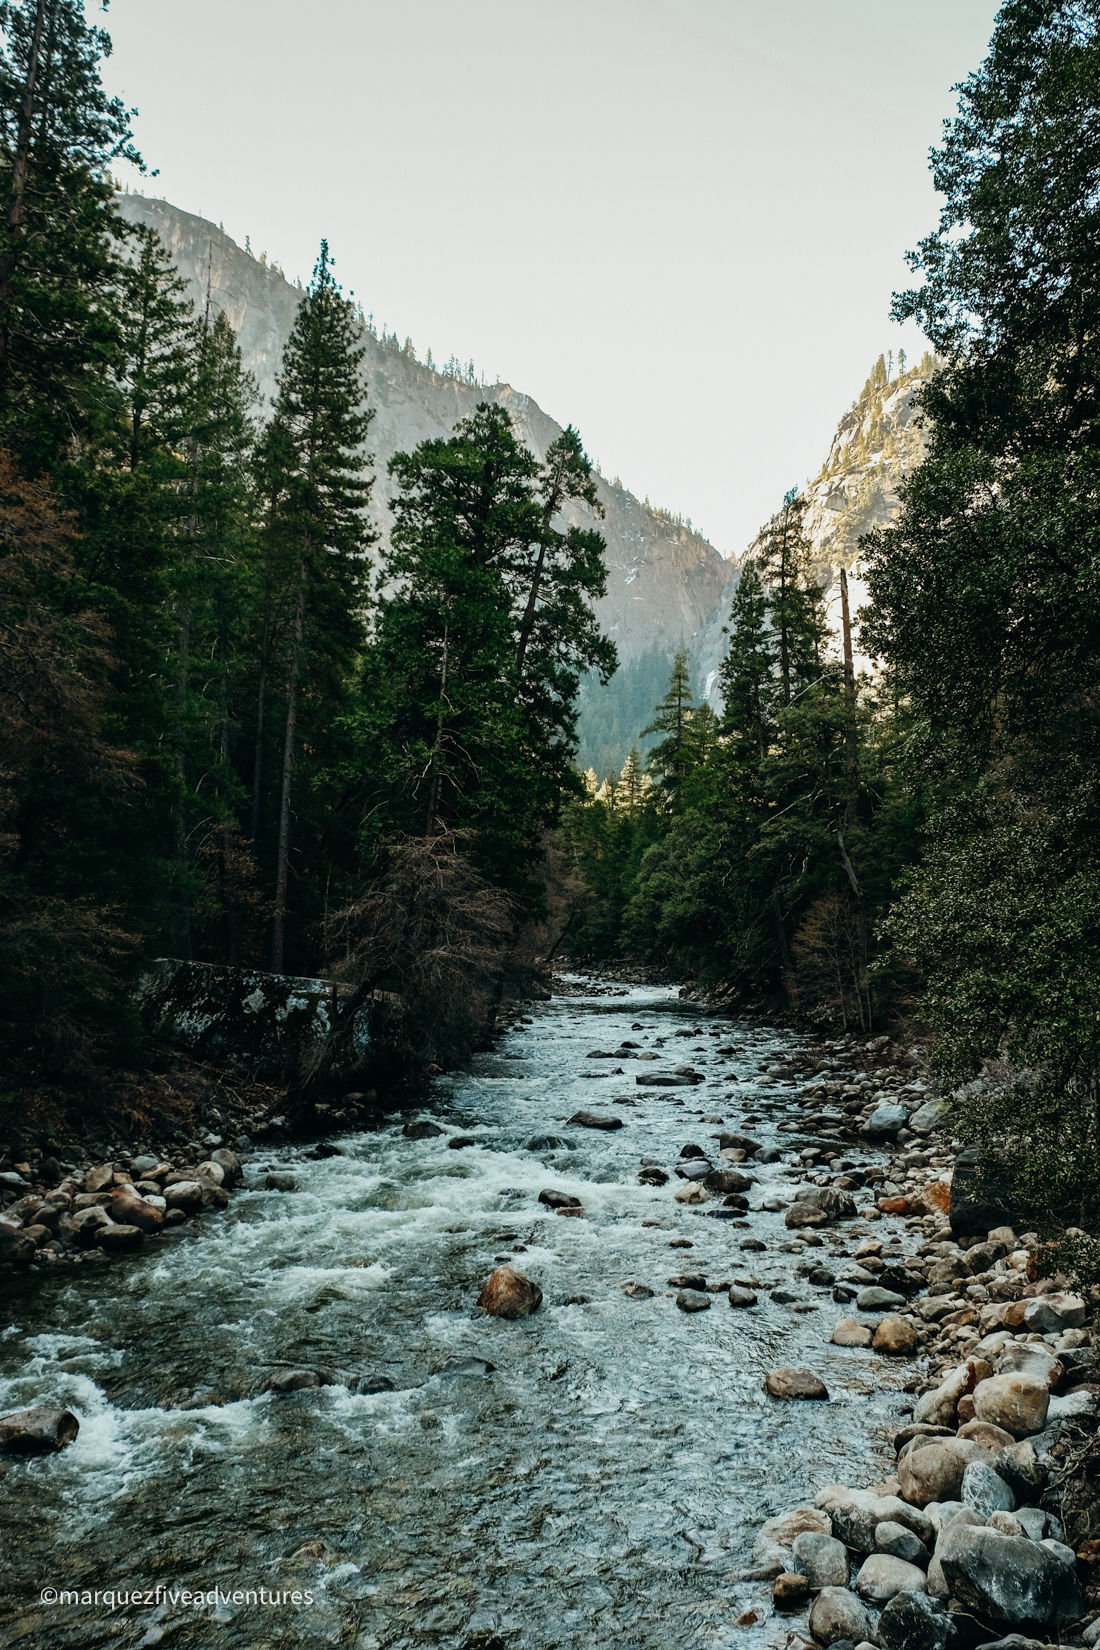 Crossing over the Merced River on the way to the Mist Trailhead. Yosemite National Park. California